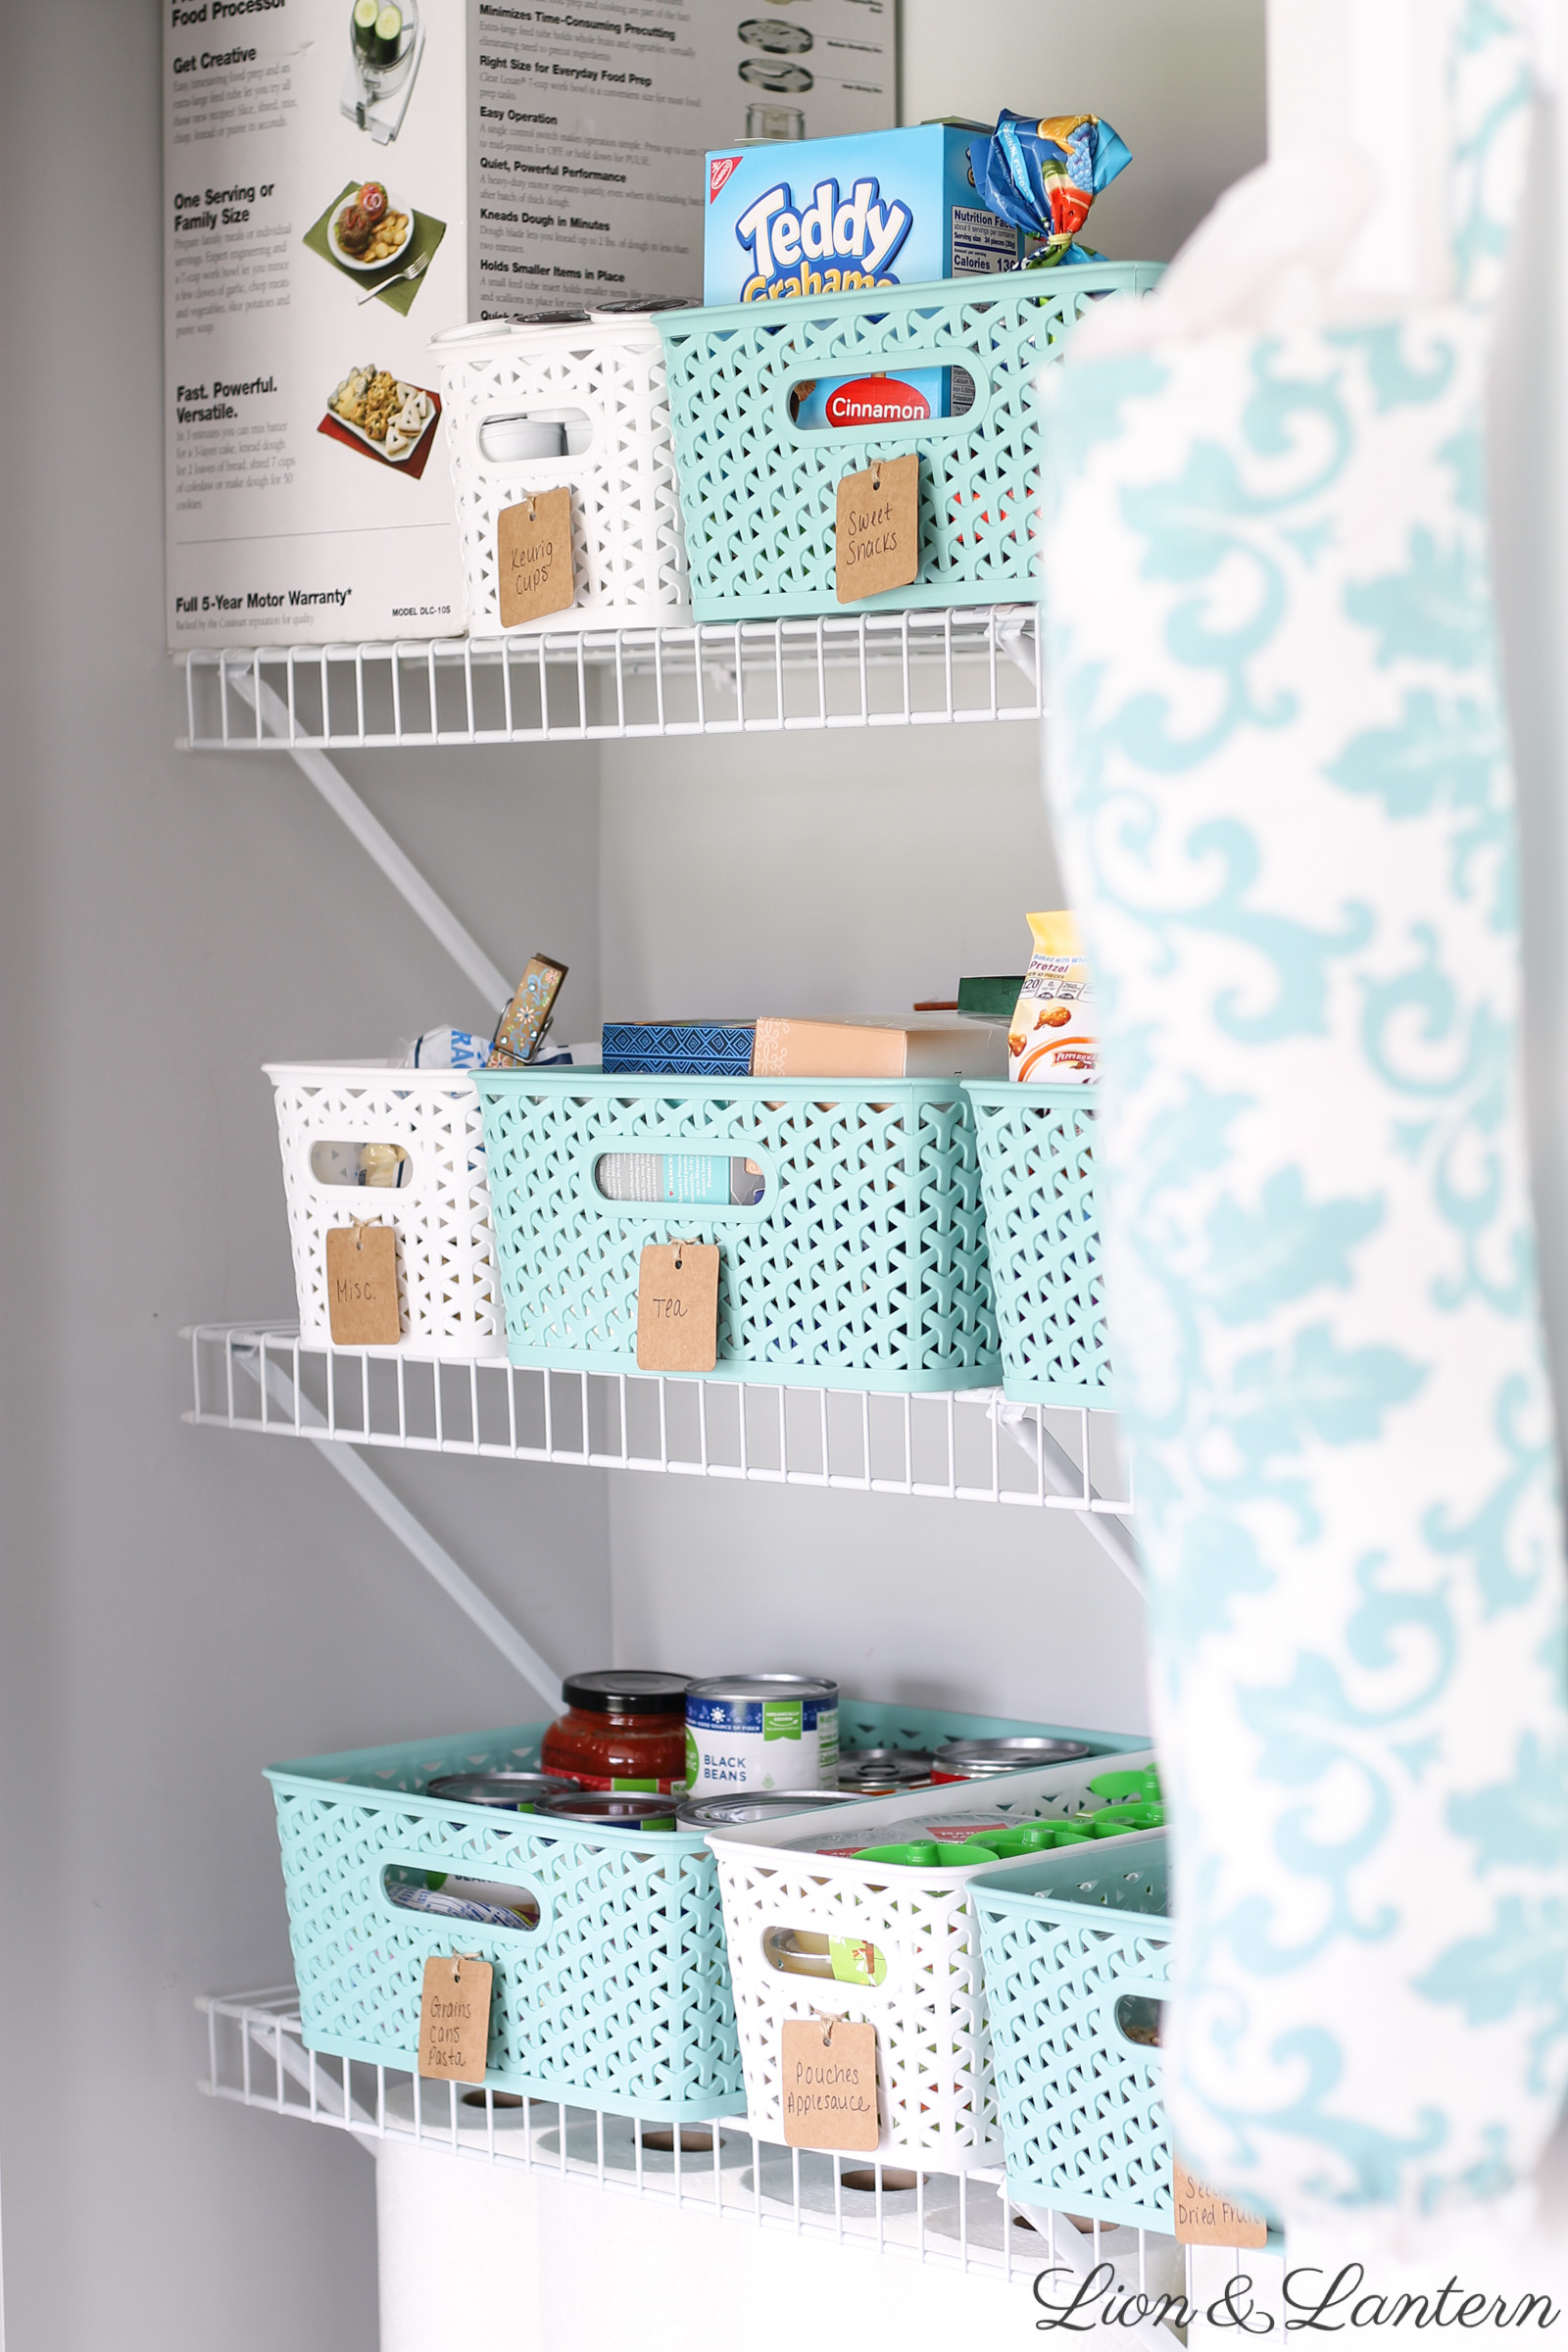 Simple Pantry Organization at LionAndLantern.com | pantry bins, budget organizing, spark joy, Target y weave baskets, food organization